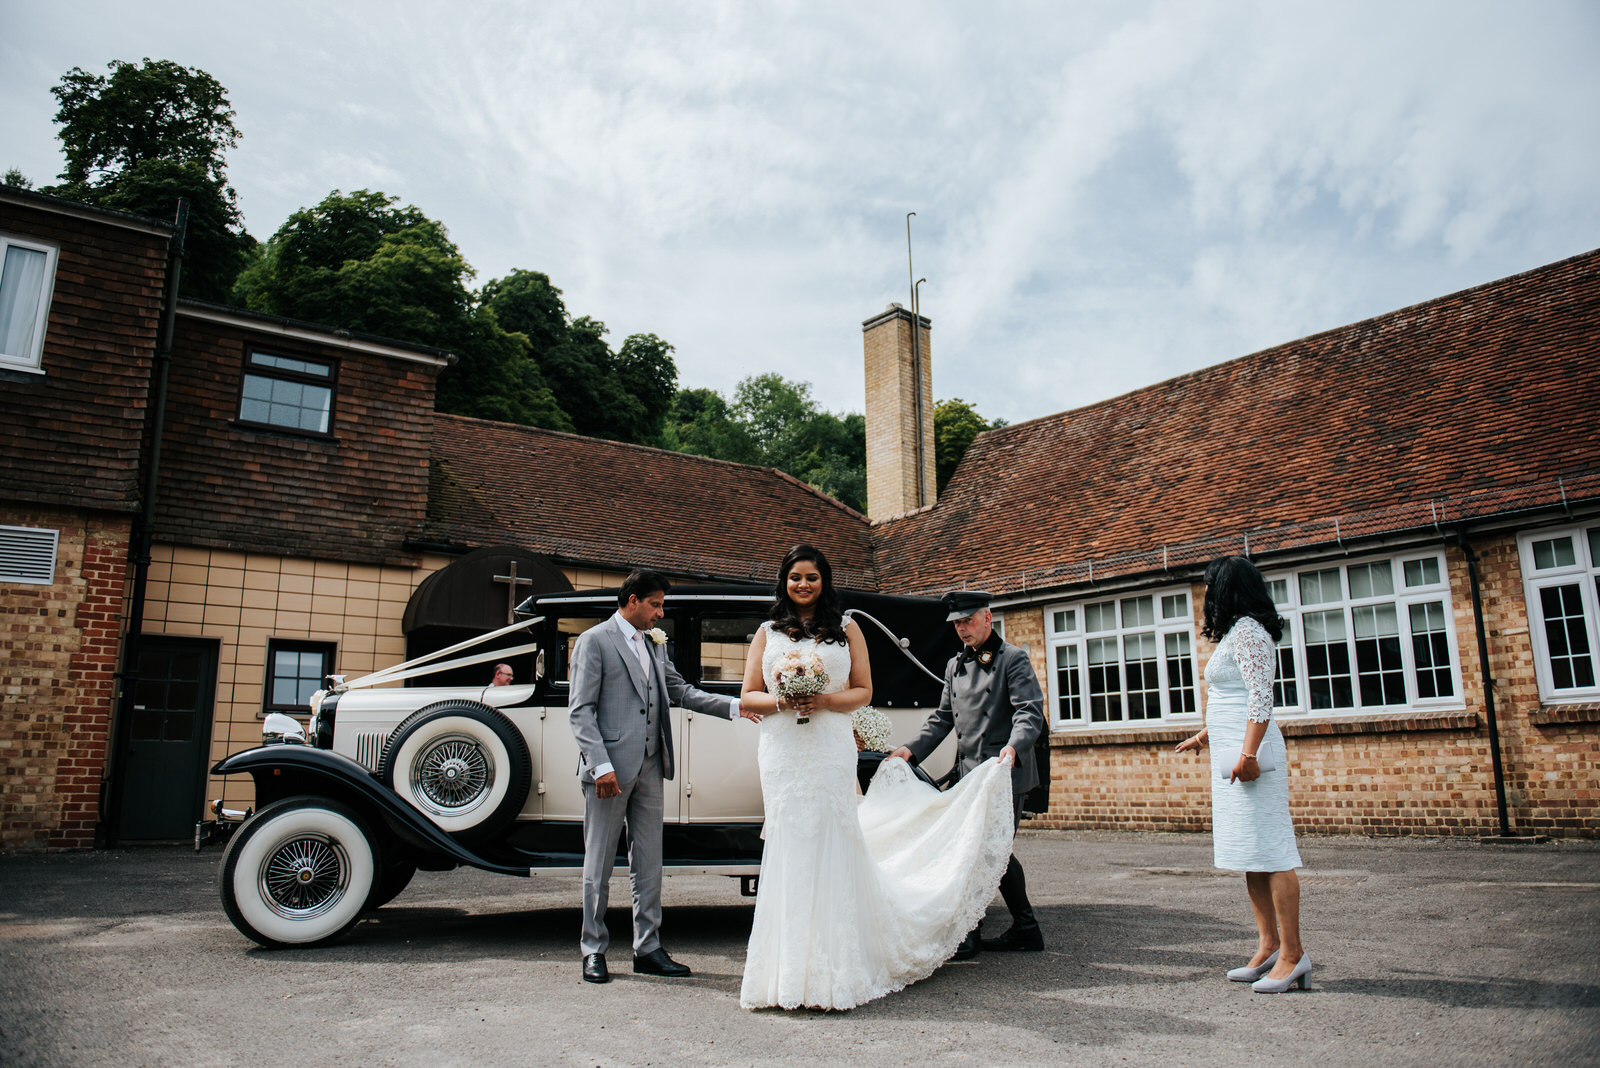 Bride stands in front of antique car ready to enter the wedding